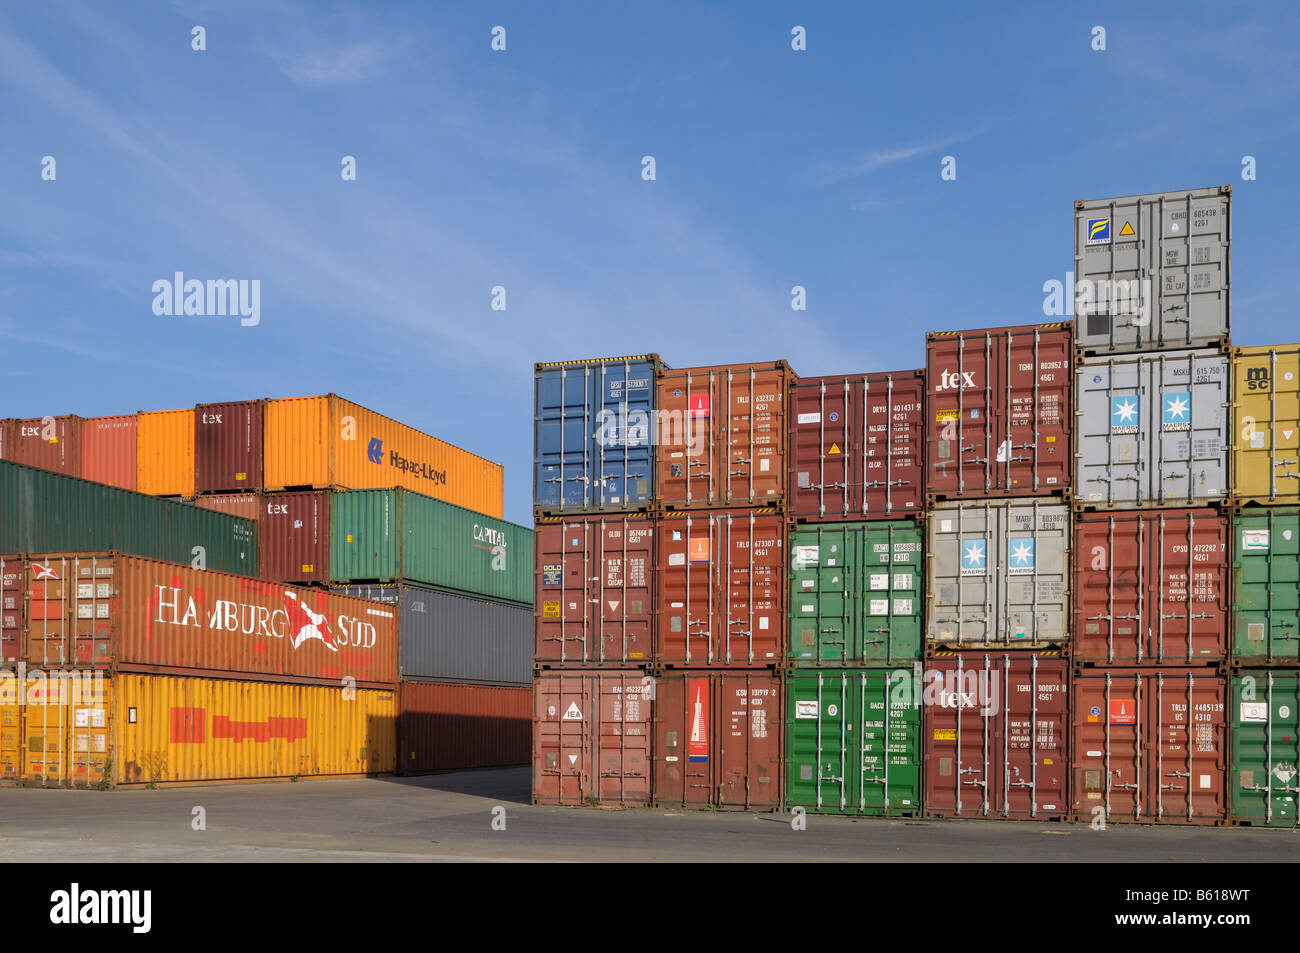 View in a container terminal, various overseas containers stacked in groups - Stock Image